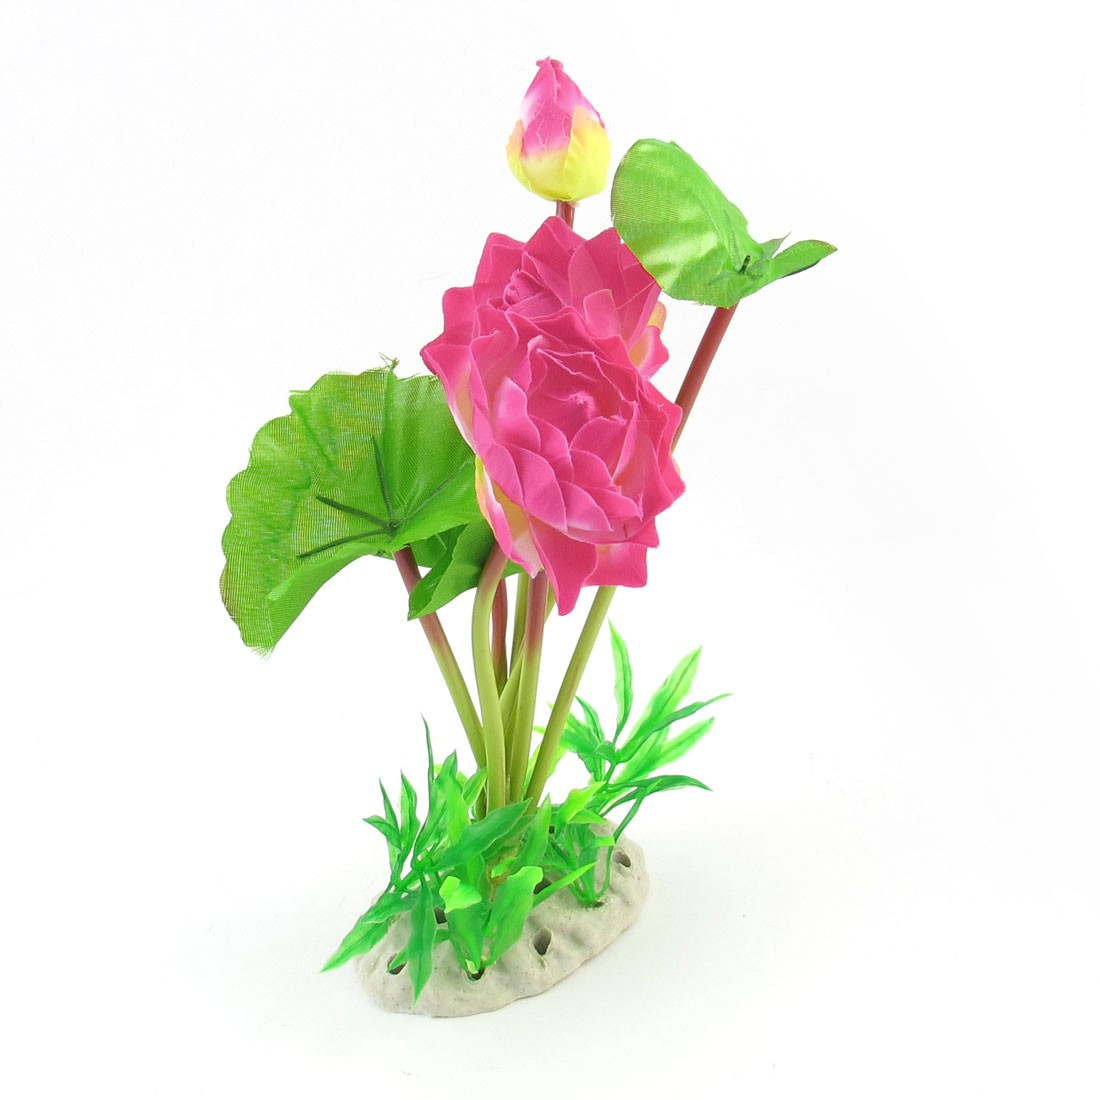 "9.8"" High Green Pink Simulation Aquarium Underwater Plant Flower Ornament"